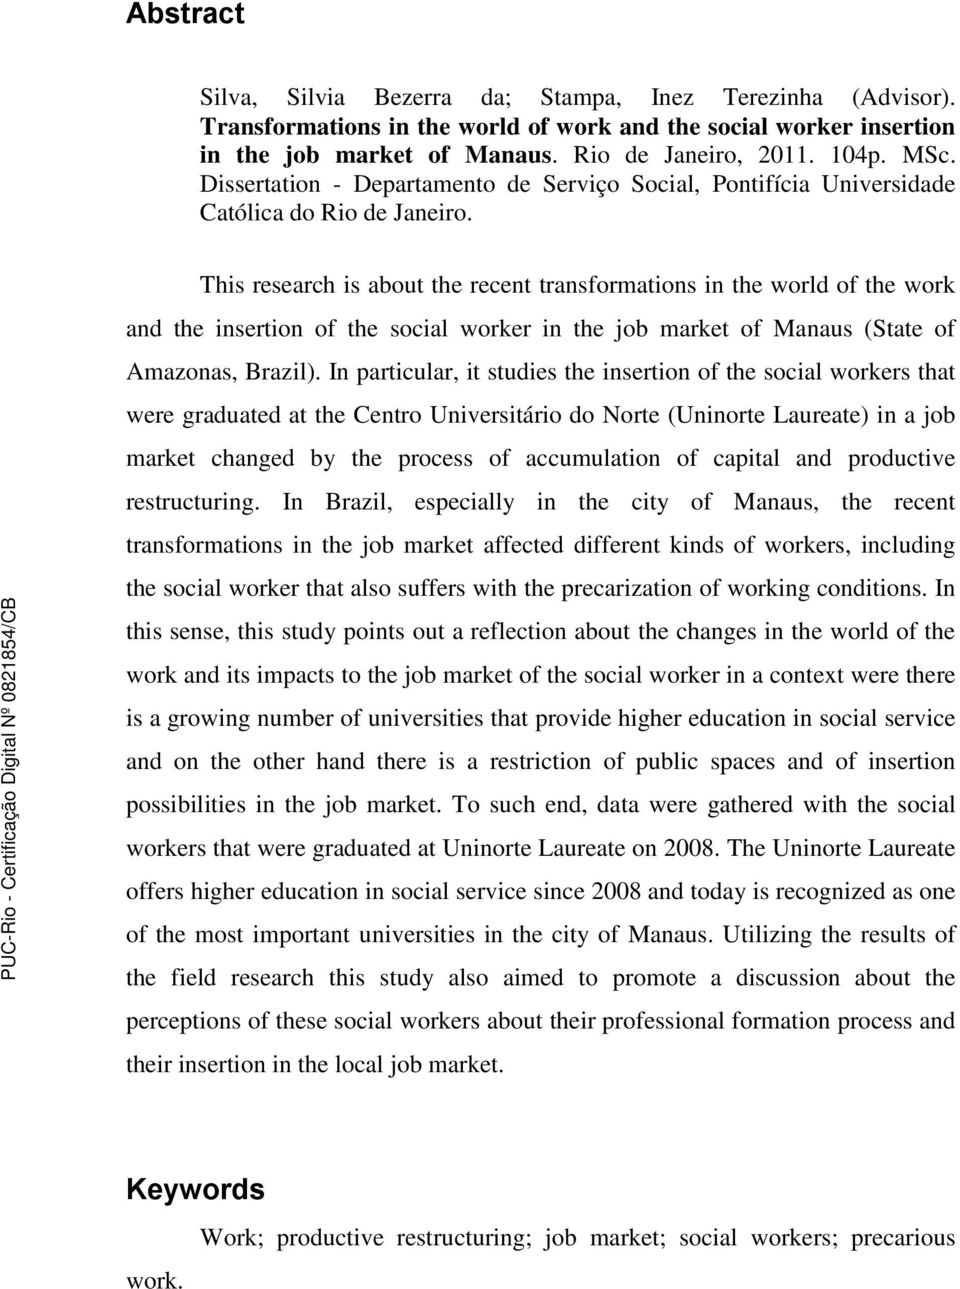 This research is about the recent transformations in the world of the work and the insertion of the social worker in the job market of Manaus (State of Amazonas, Brazil).